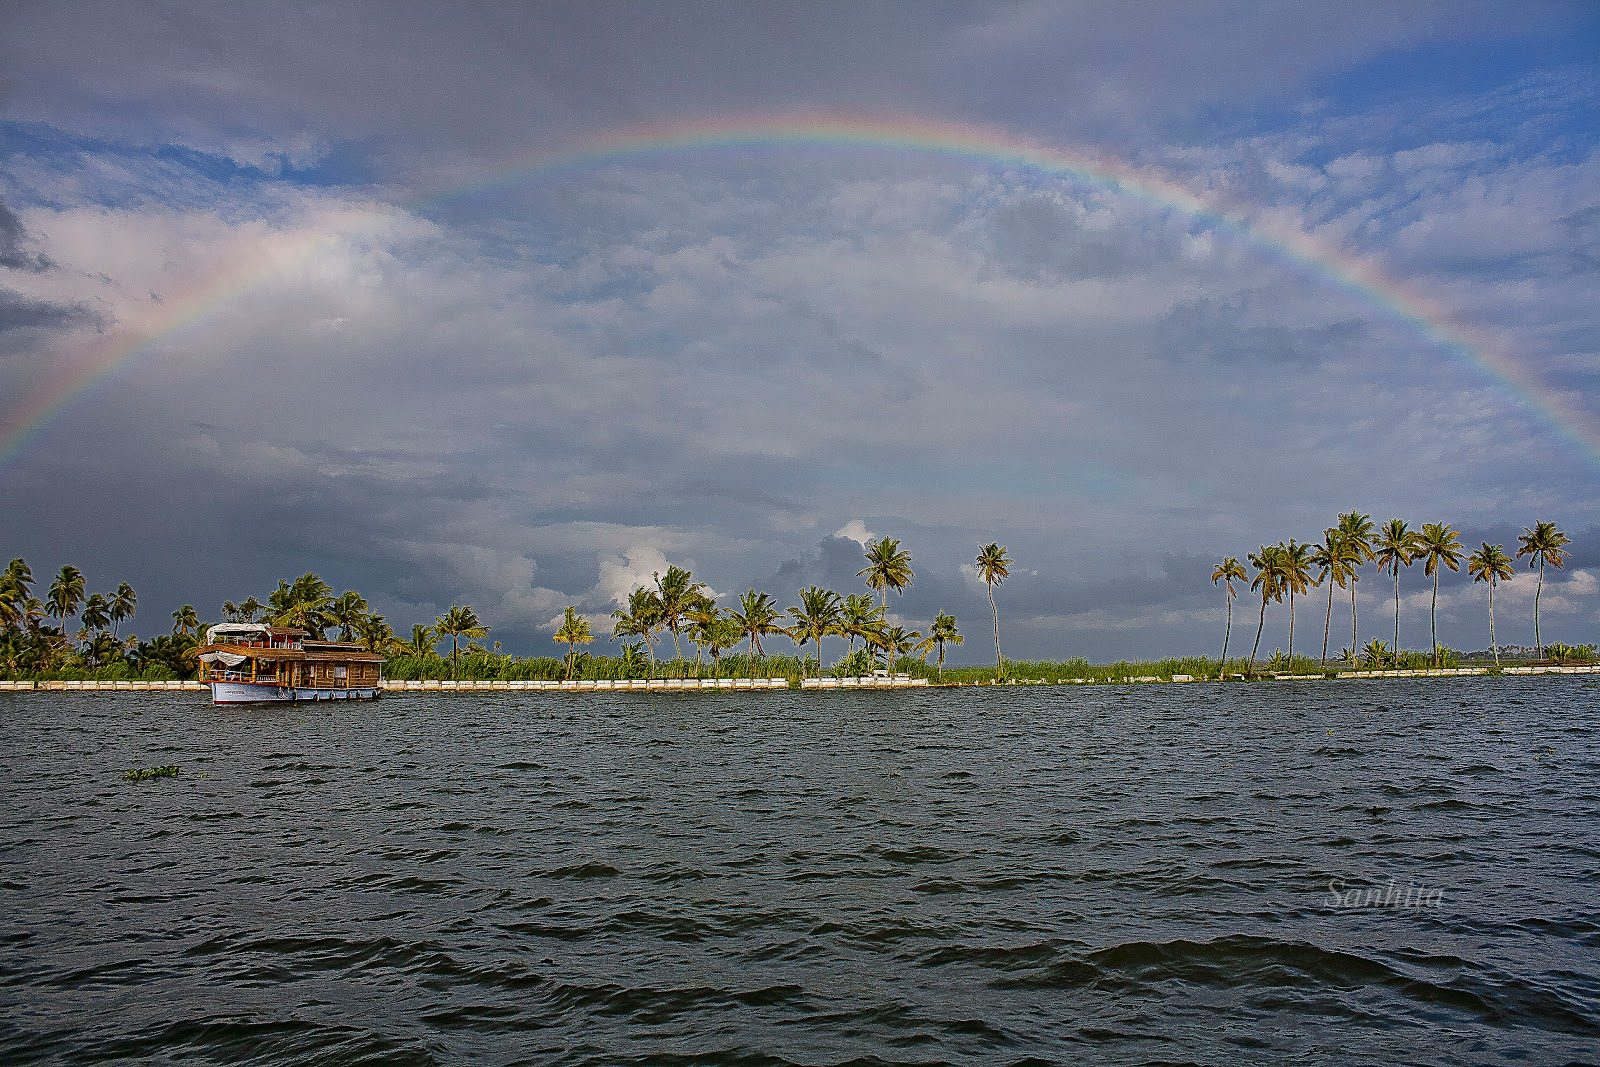 A complete rainbow after the storm